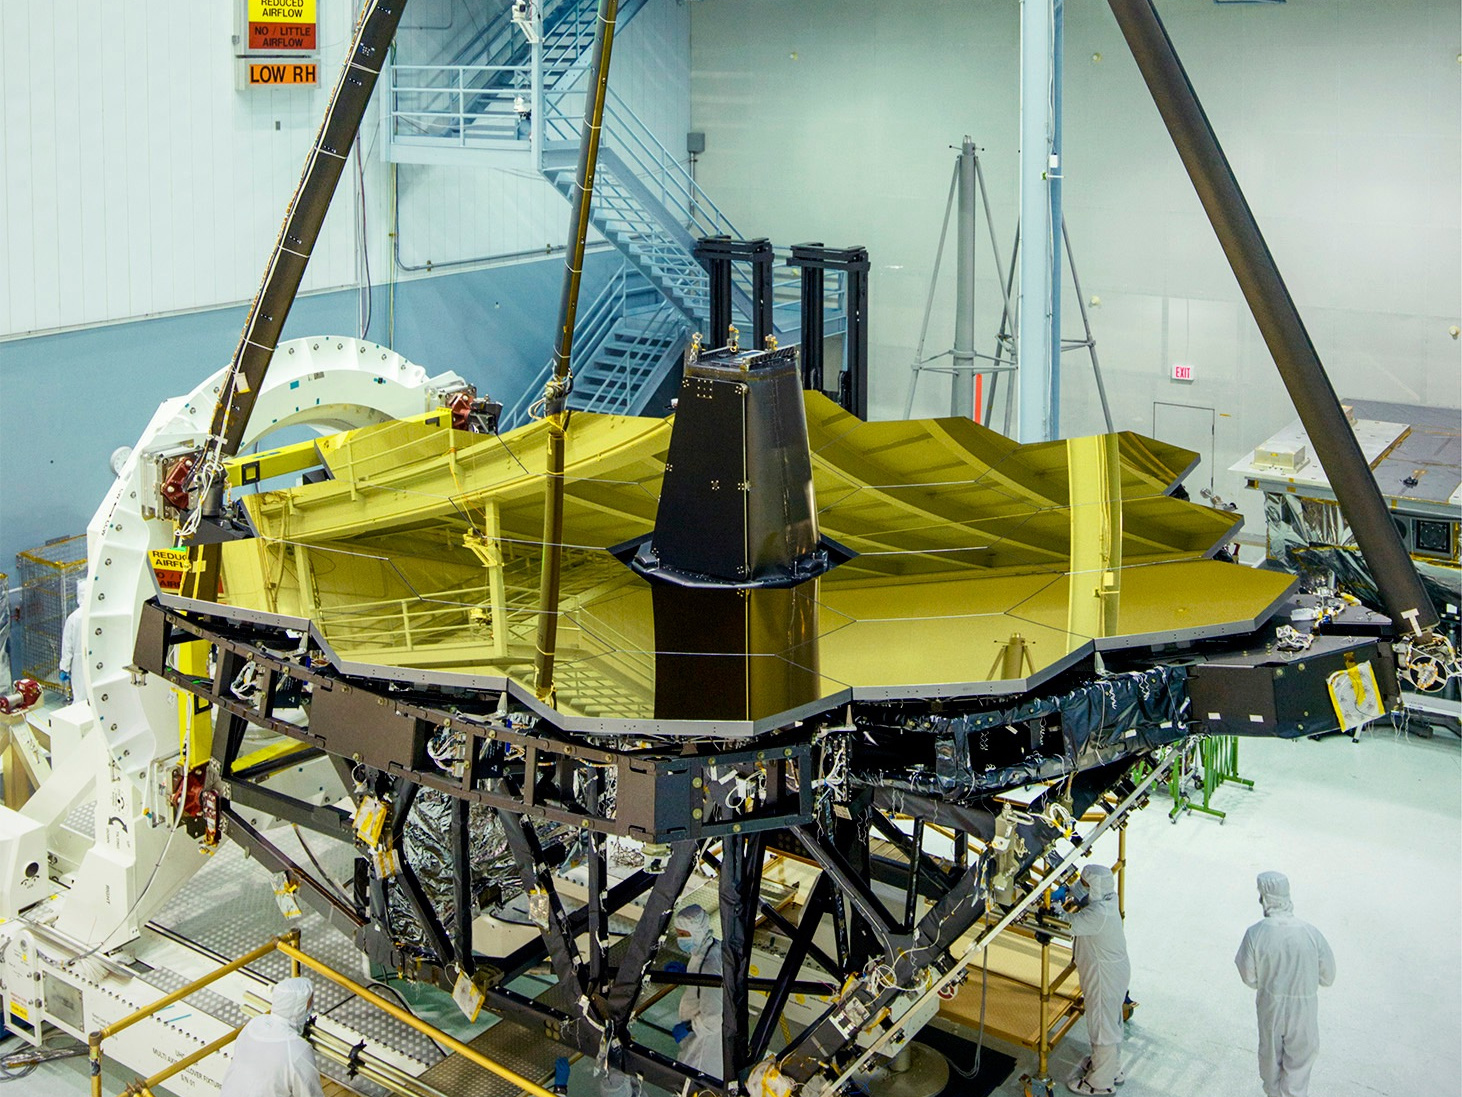 Standing tall and glimmering gold inside NASA's Goddard Space Flight Center's clean room in Greenbelt, Maryland is the James Webb Space Telescope primary mirror. With an aperture of 6.5metres, it will be the largest yet sent into space. Image credits: NASA/Chris Gunn.